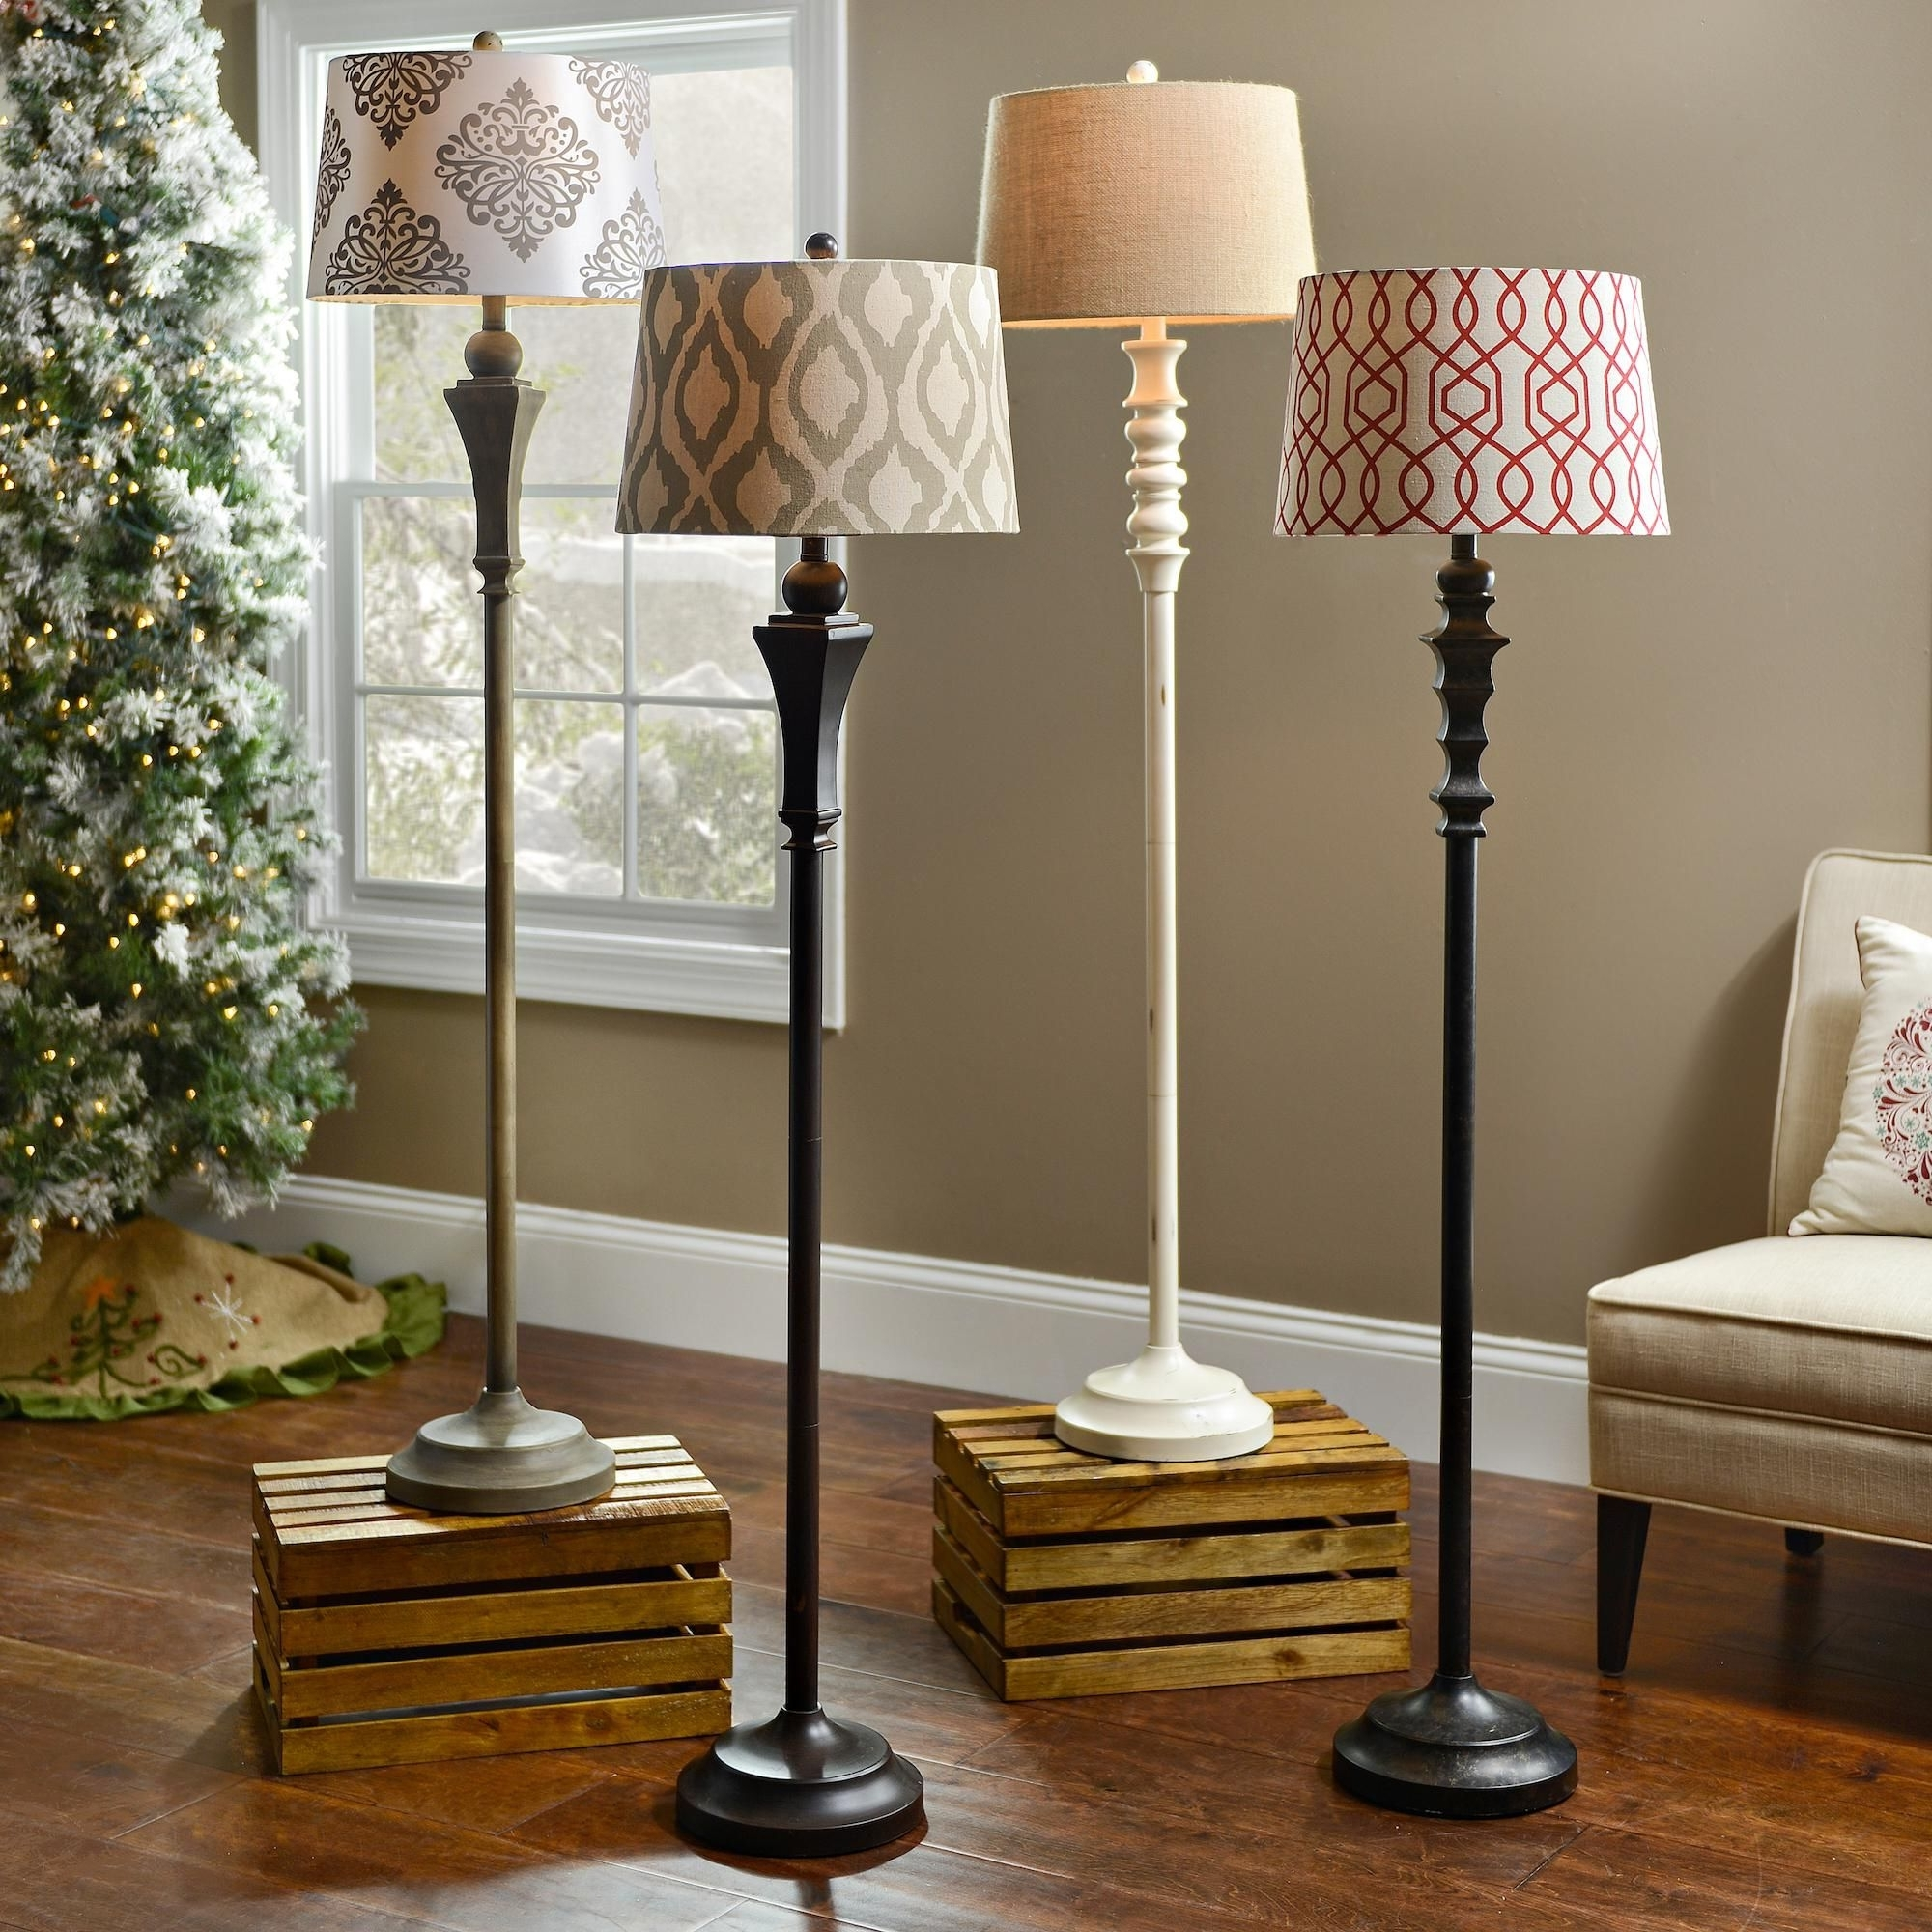 Living Room Table Lamps Intended For Latest Add Light To A Dim Corner With A Stylish Floor Lamp! (View 8 of 15)